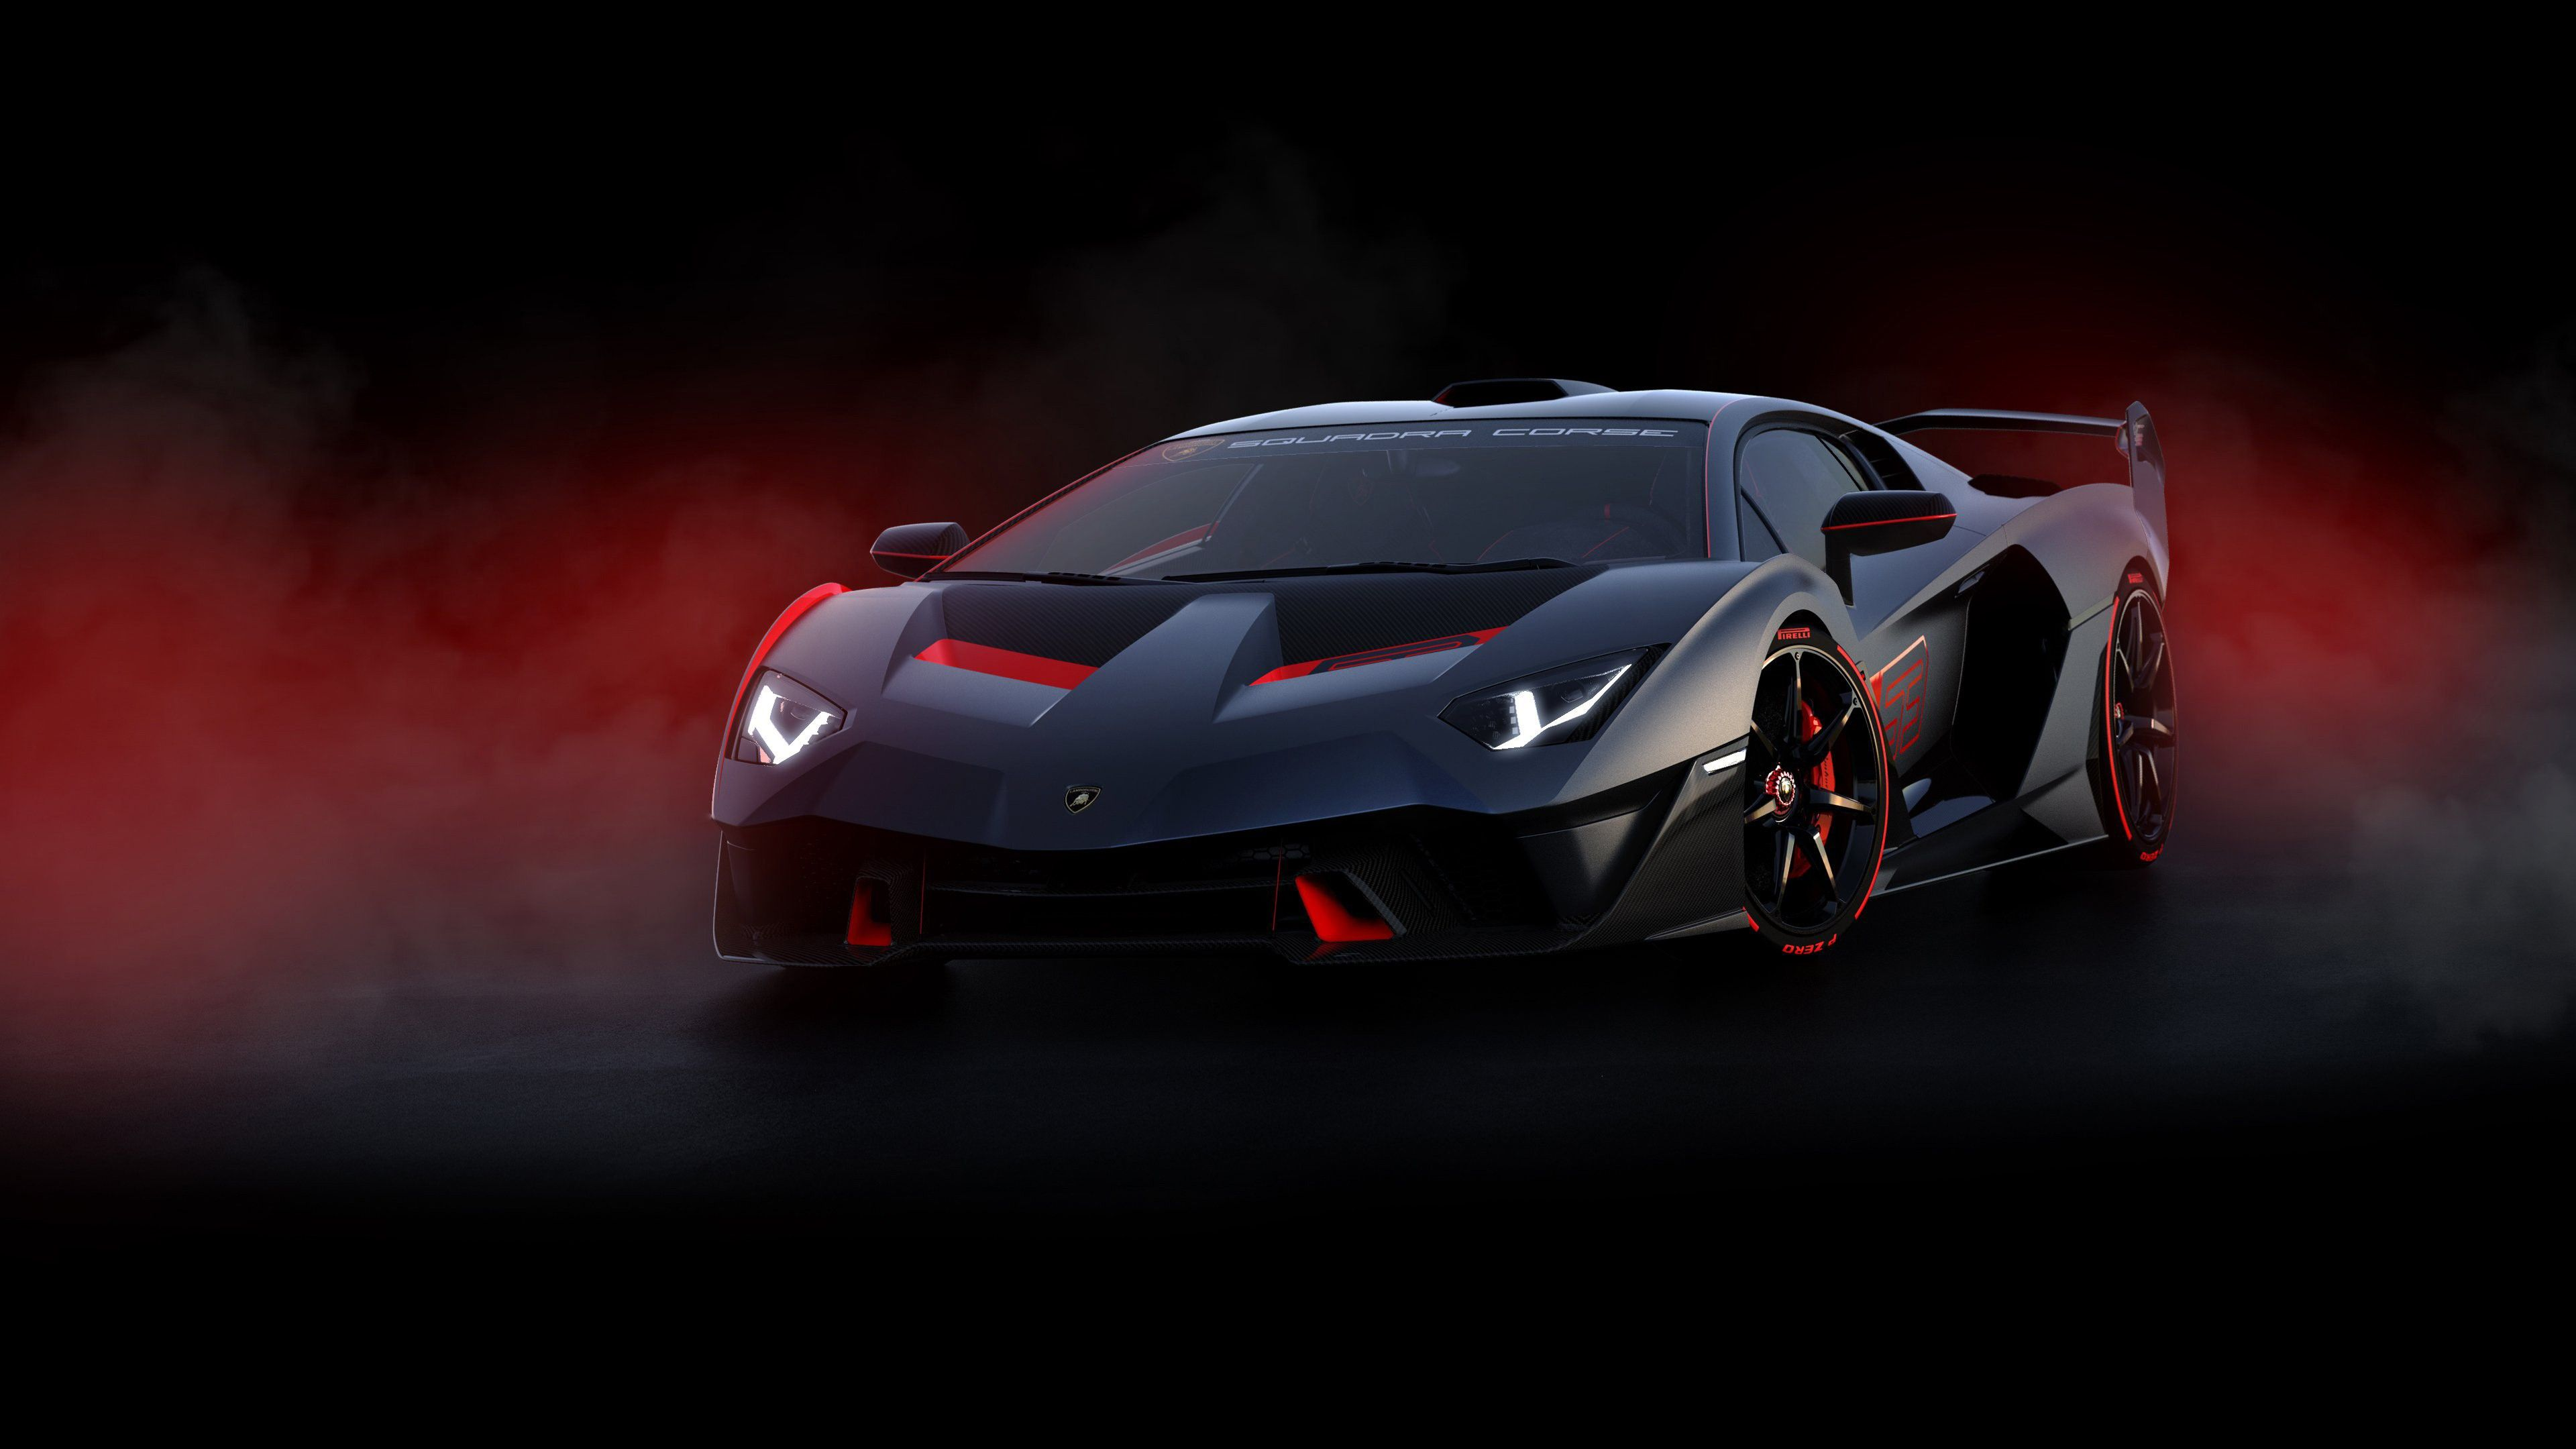 Best Car Wallpapers For Laptop